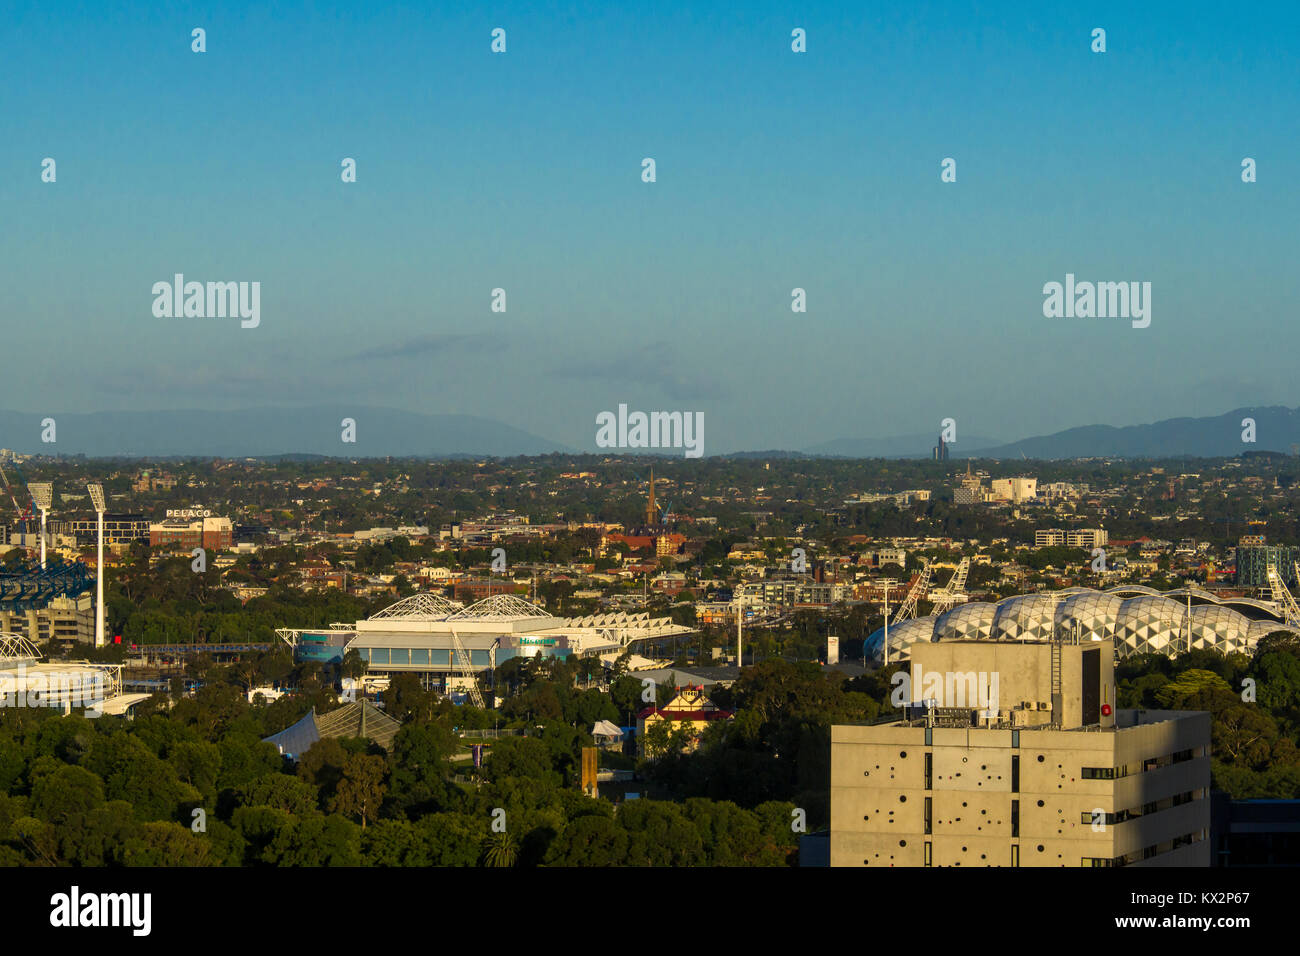 View across South-East Melbourne with sporting arenas in Melbourne Park, Melbourne, Victoria, Australia - Stock Image